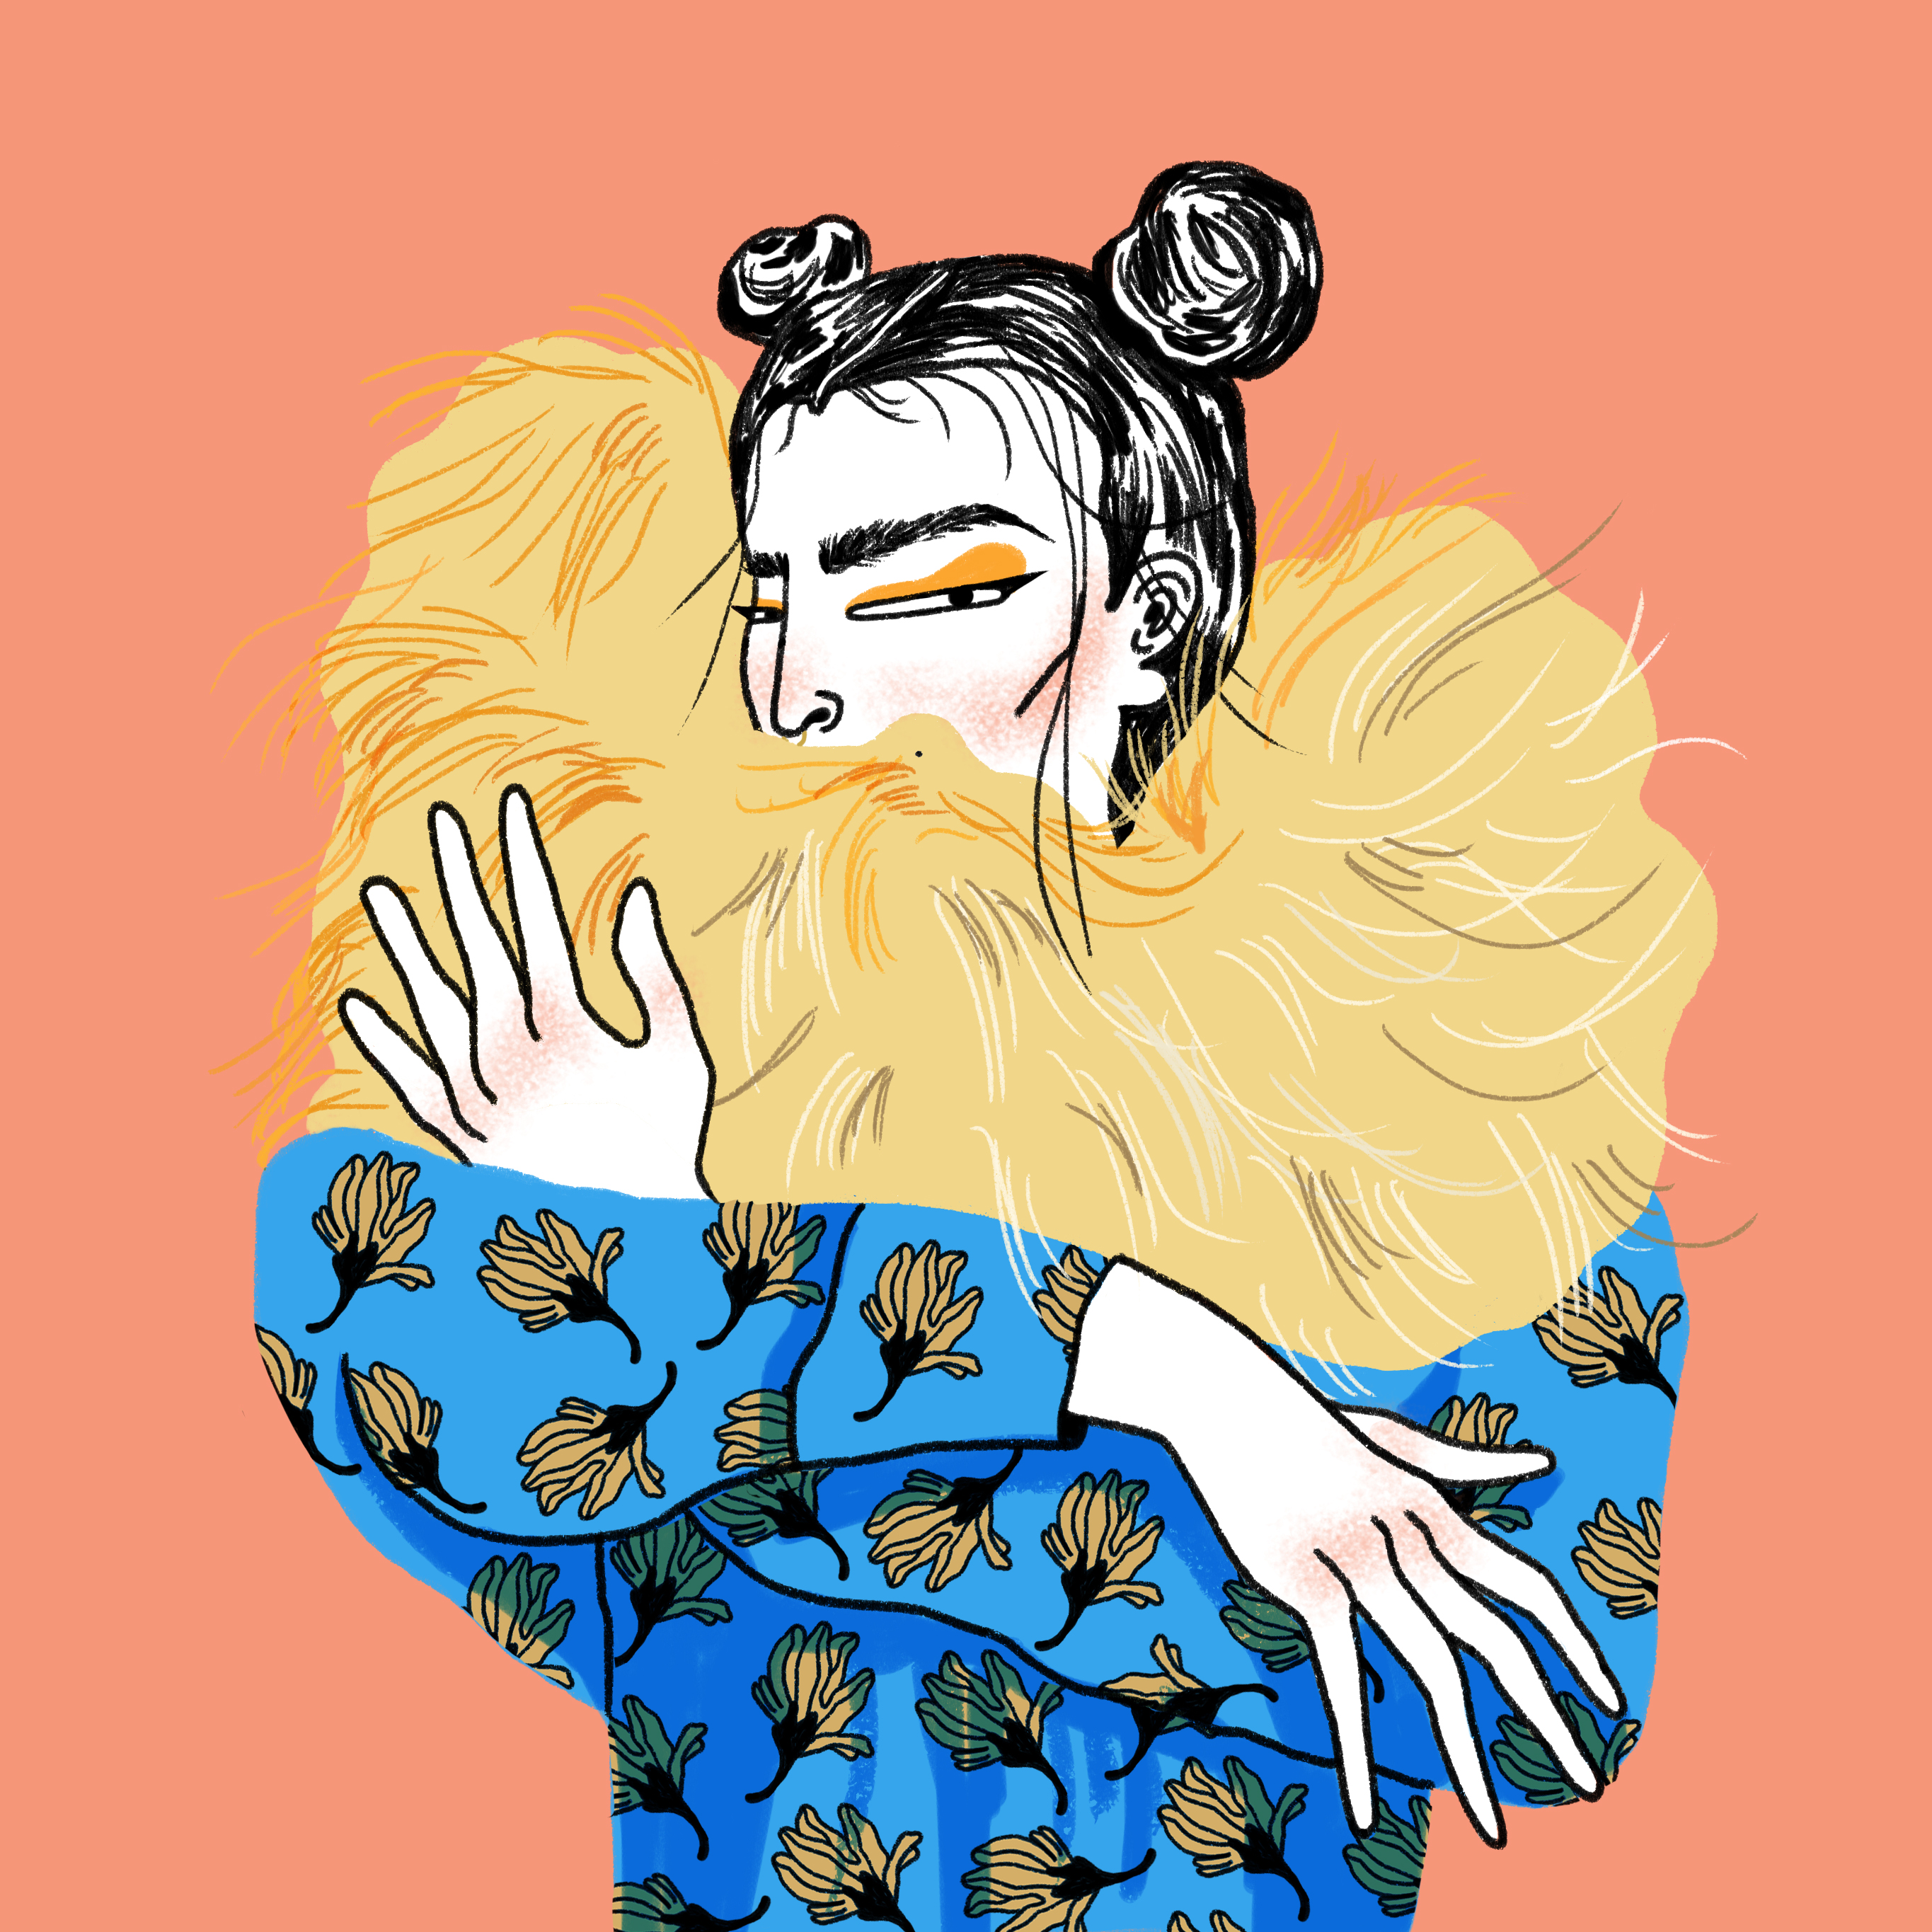 Illustrations by Aditi Damle